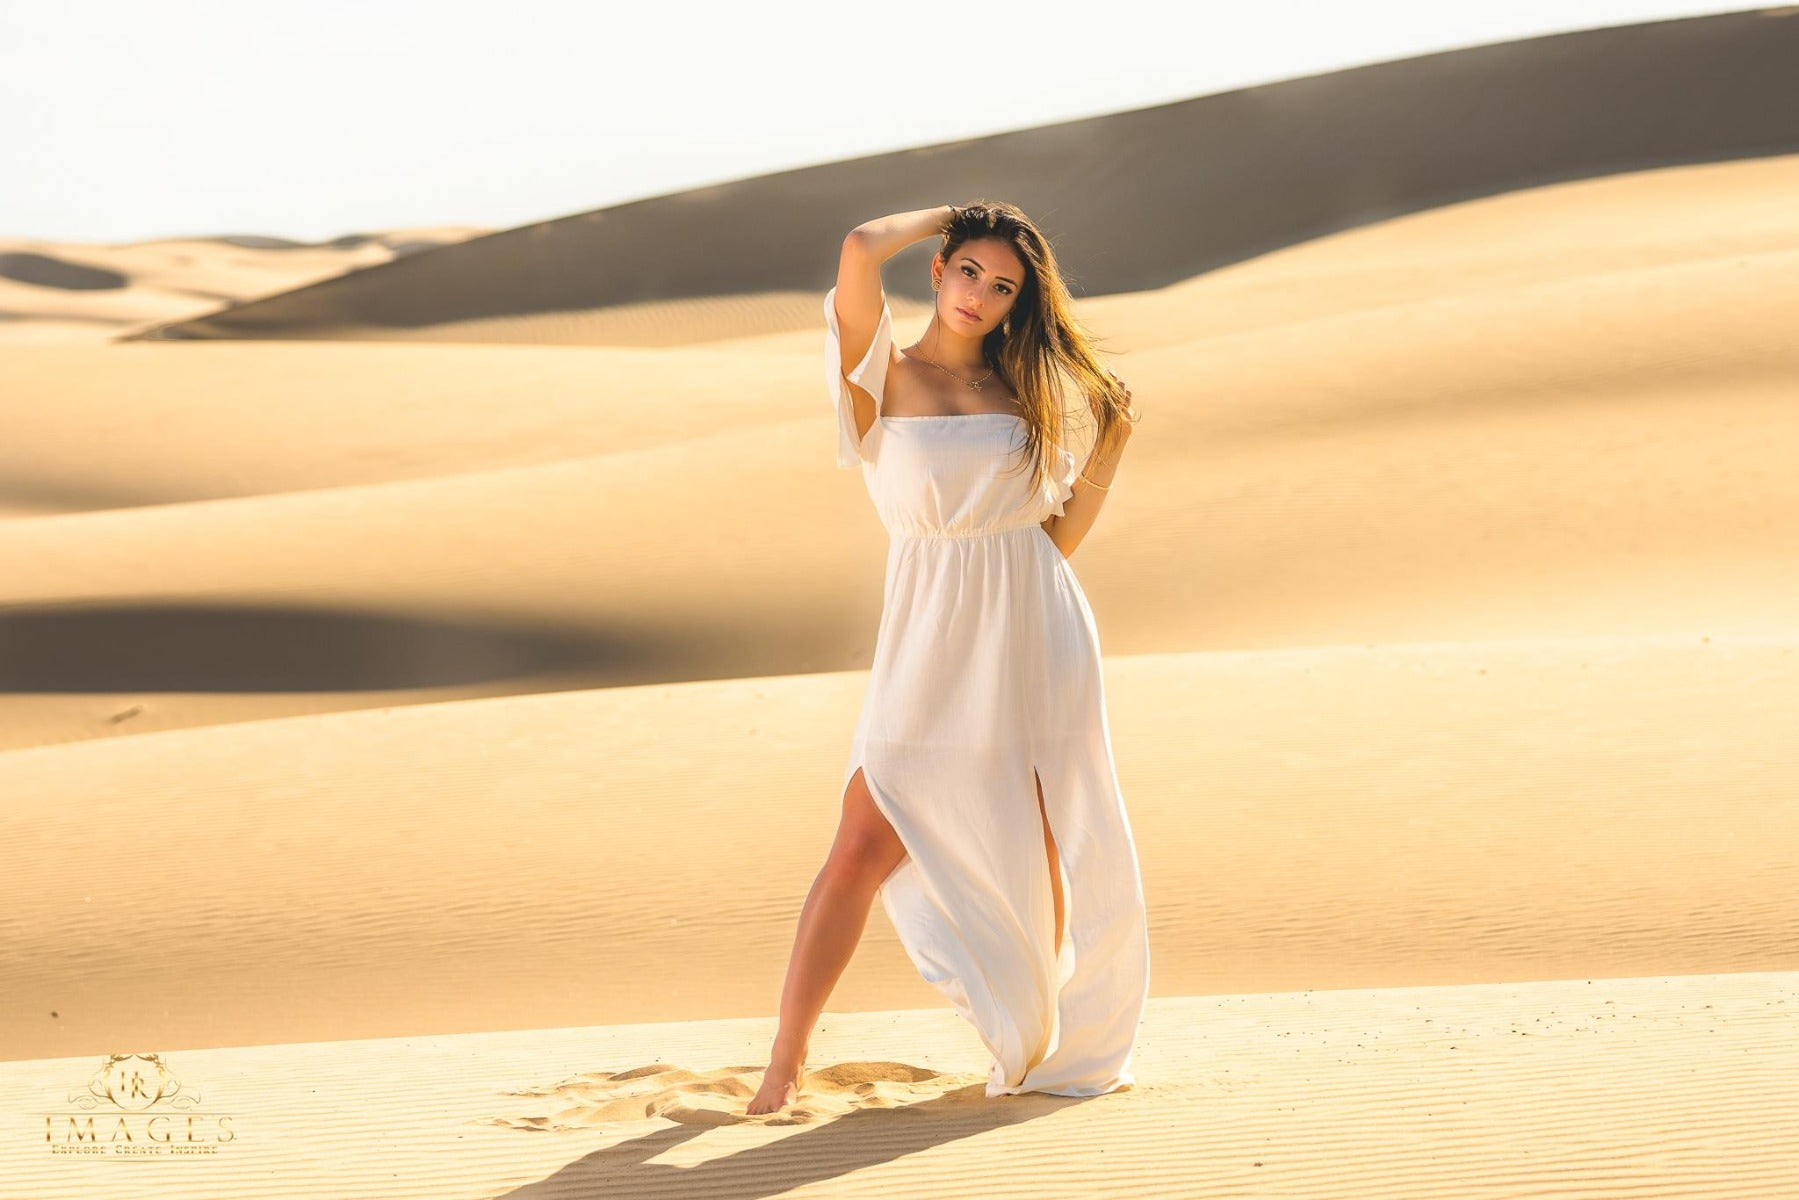 Environmental portrait with sand dunes